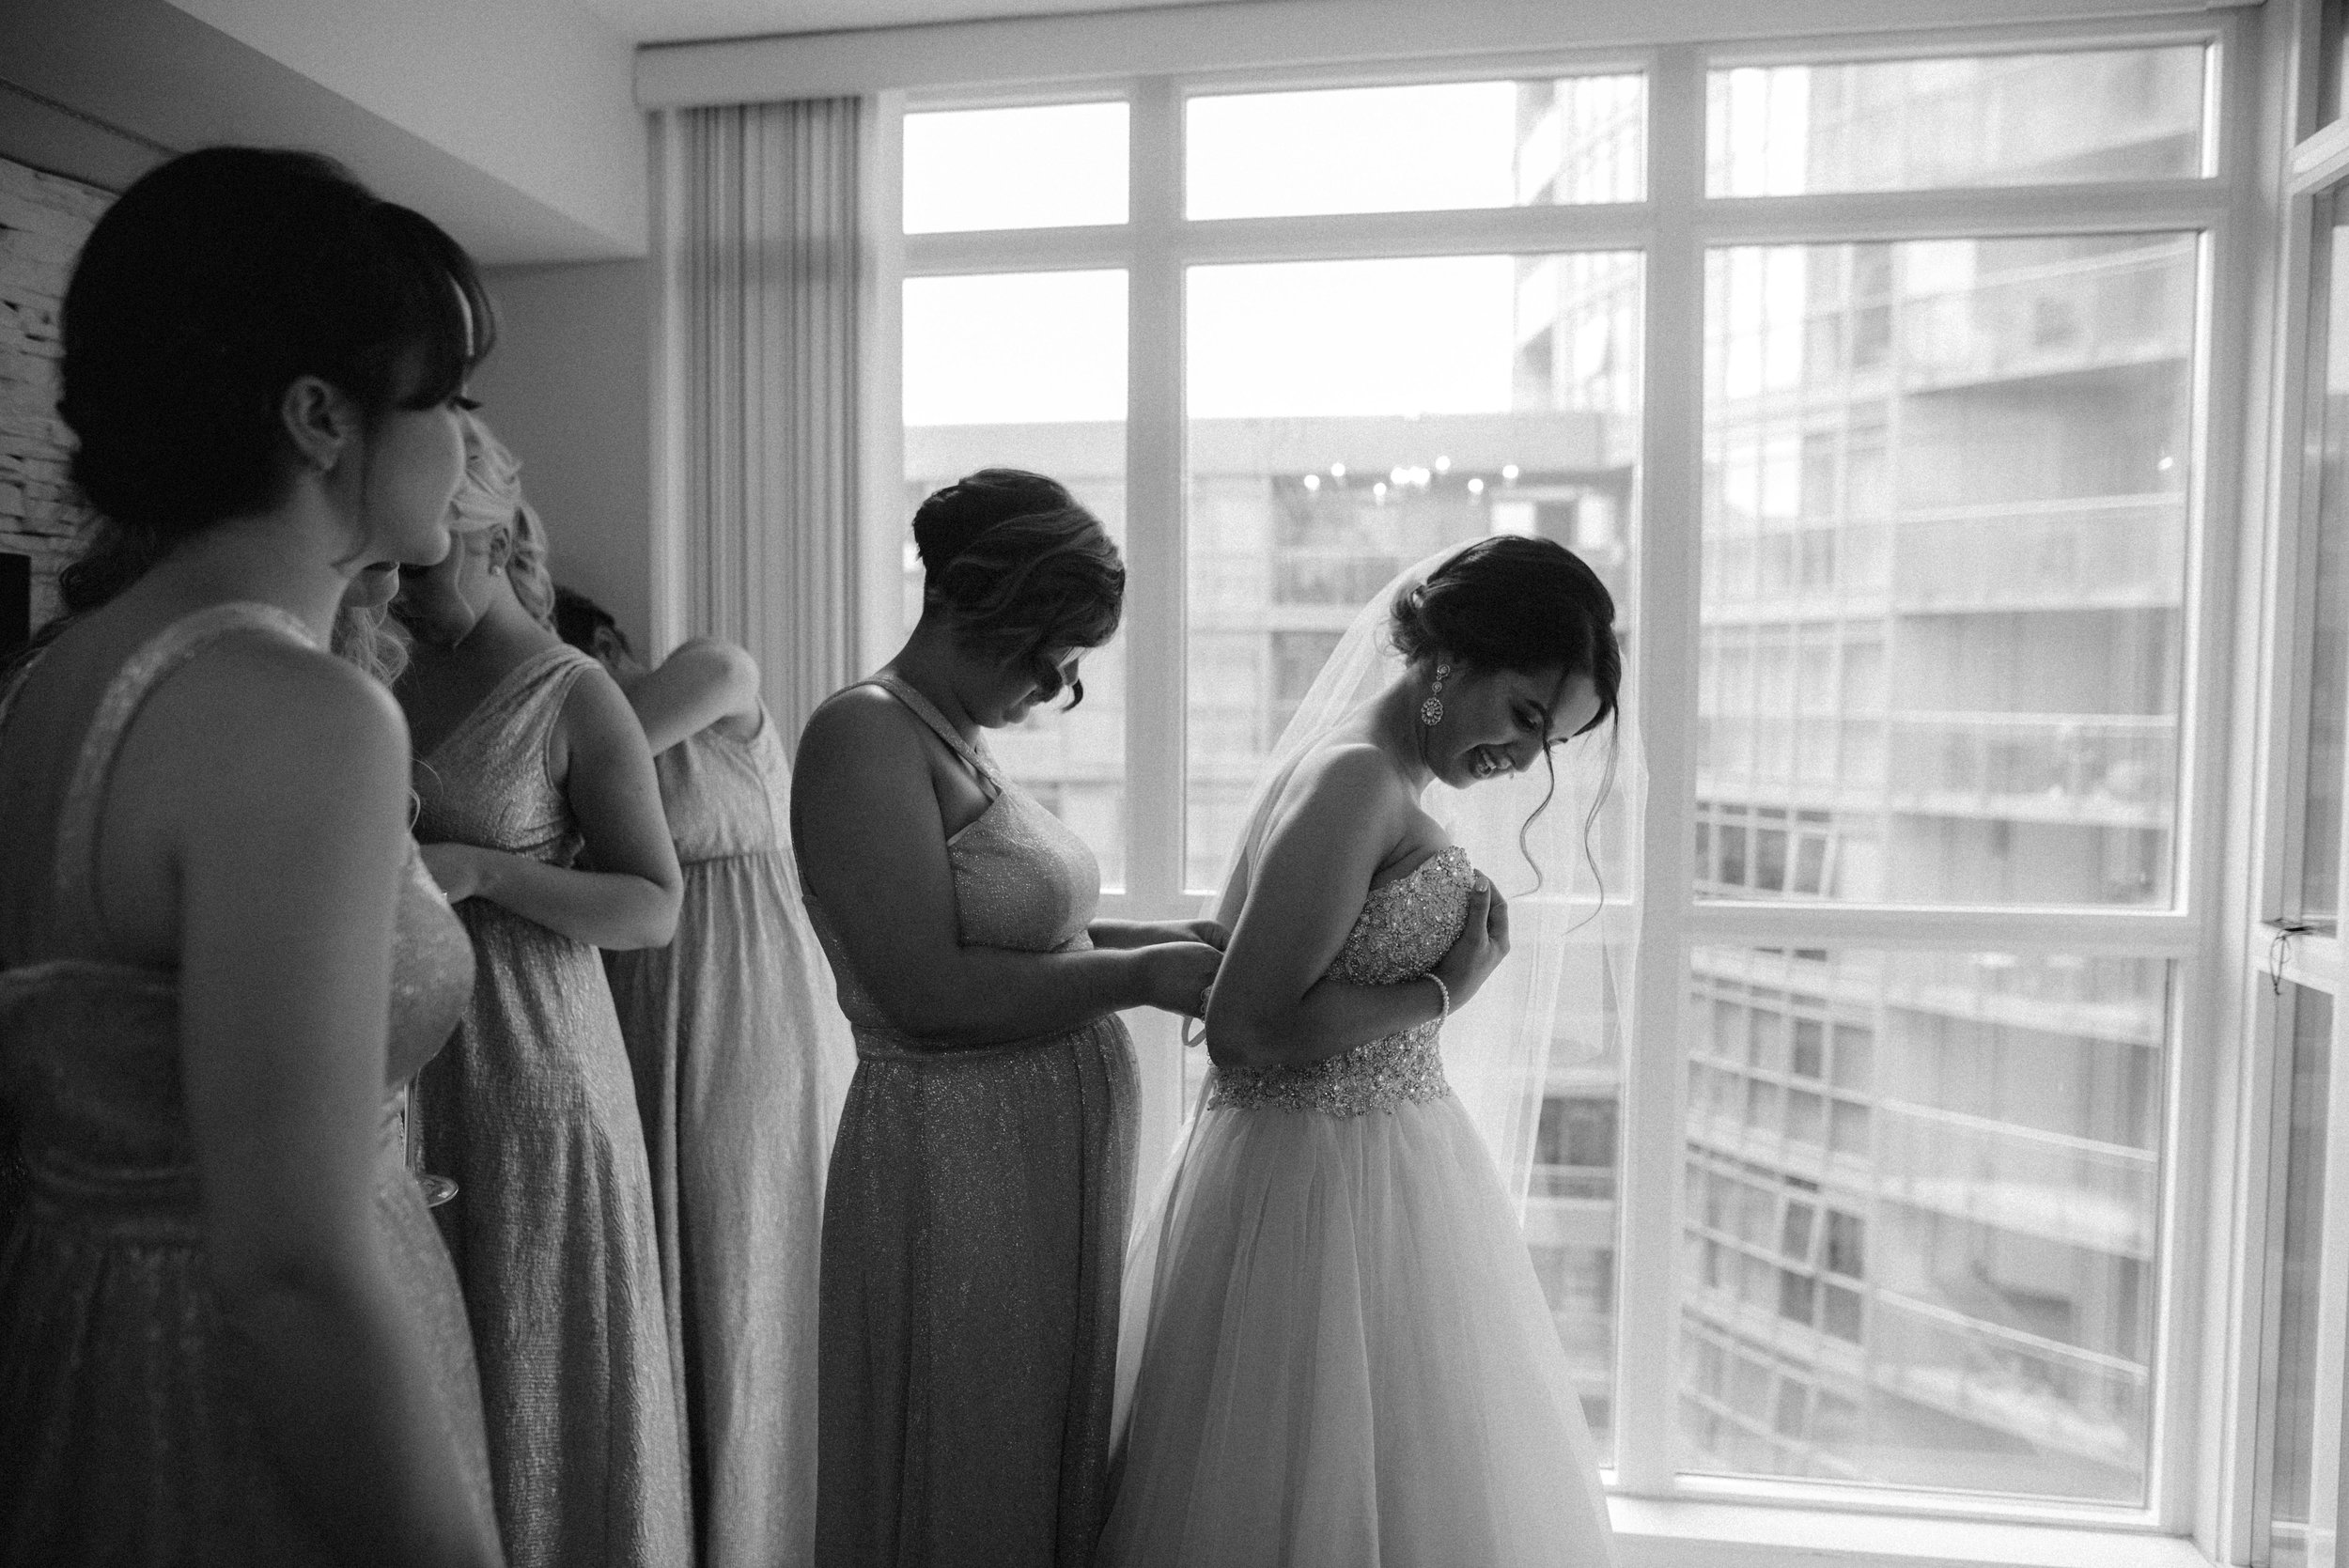 mariage_photographe_toronto_gatineau_ottawa_photographer_wedding-61.jpg